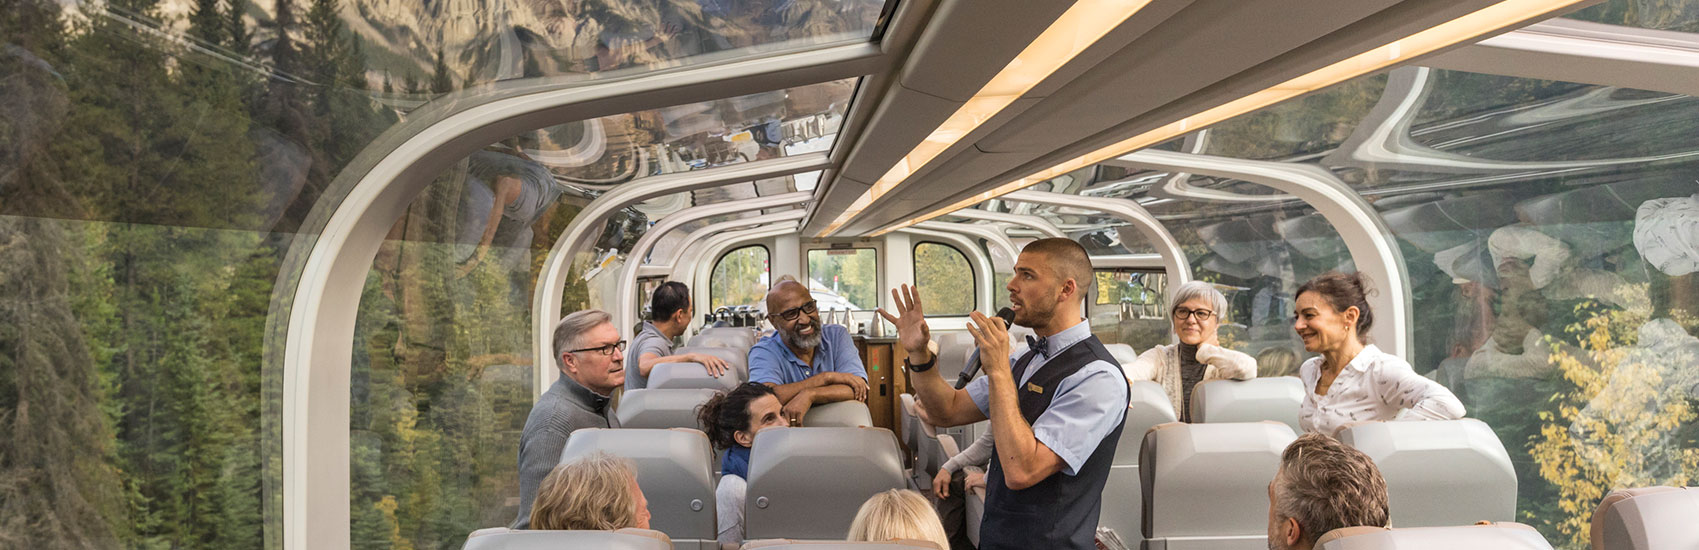 Mountain Bound in 2021 with Rocky Mountaineer 2